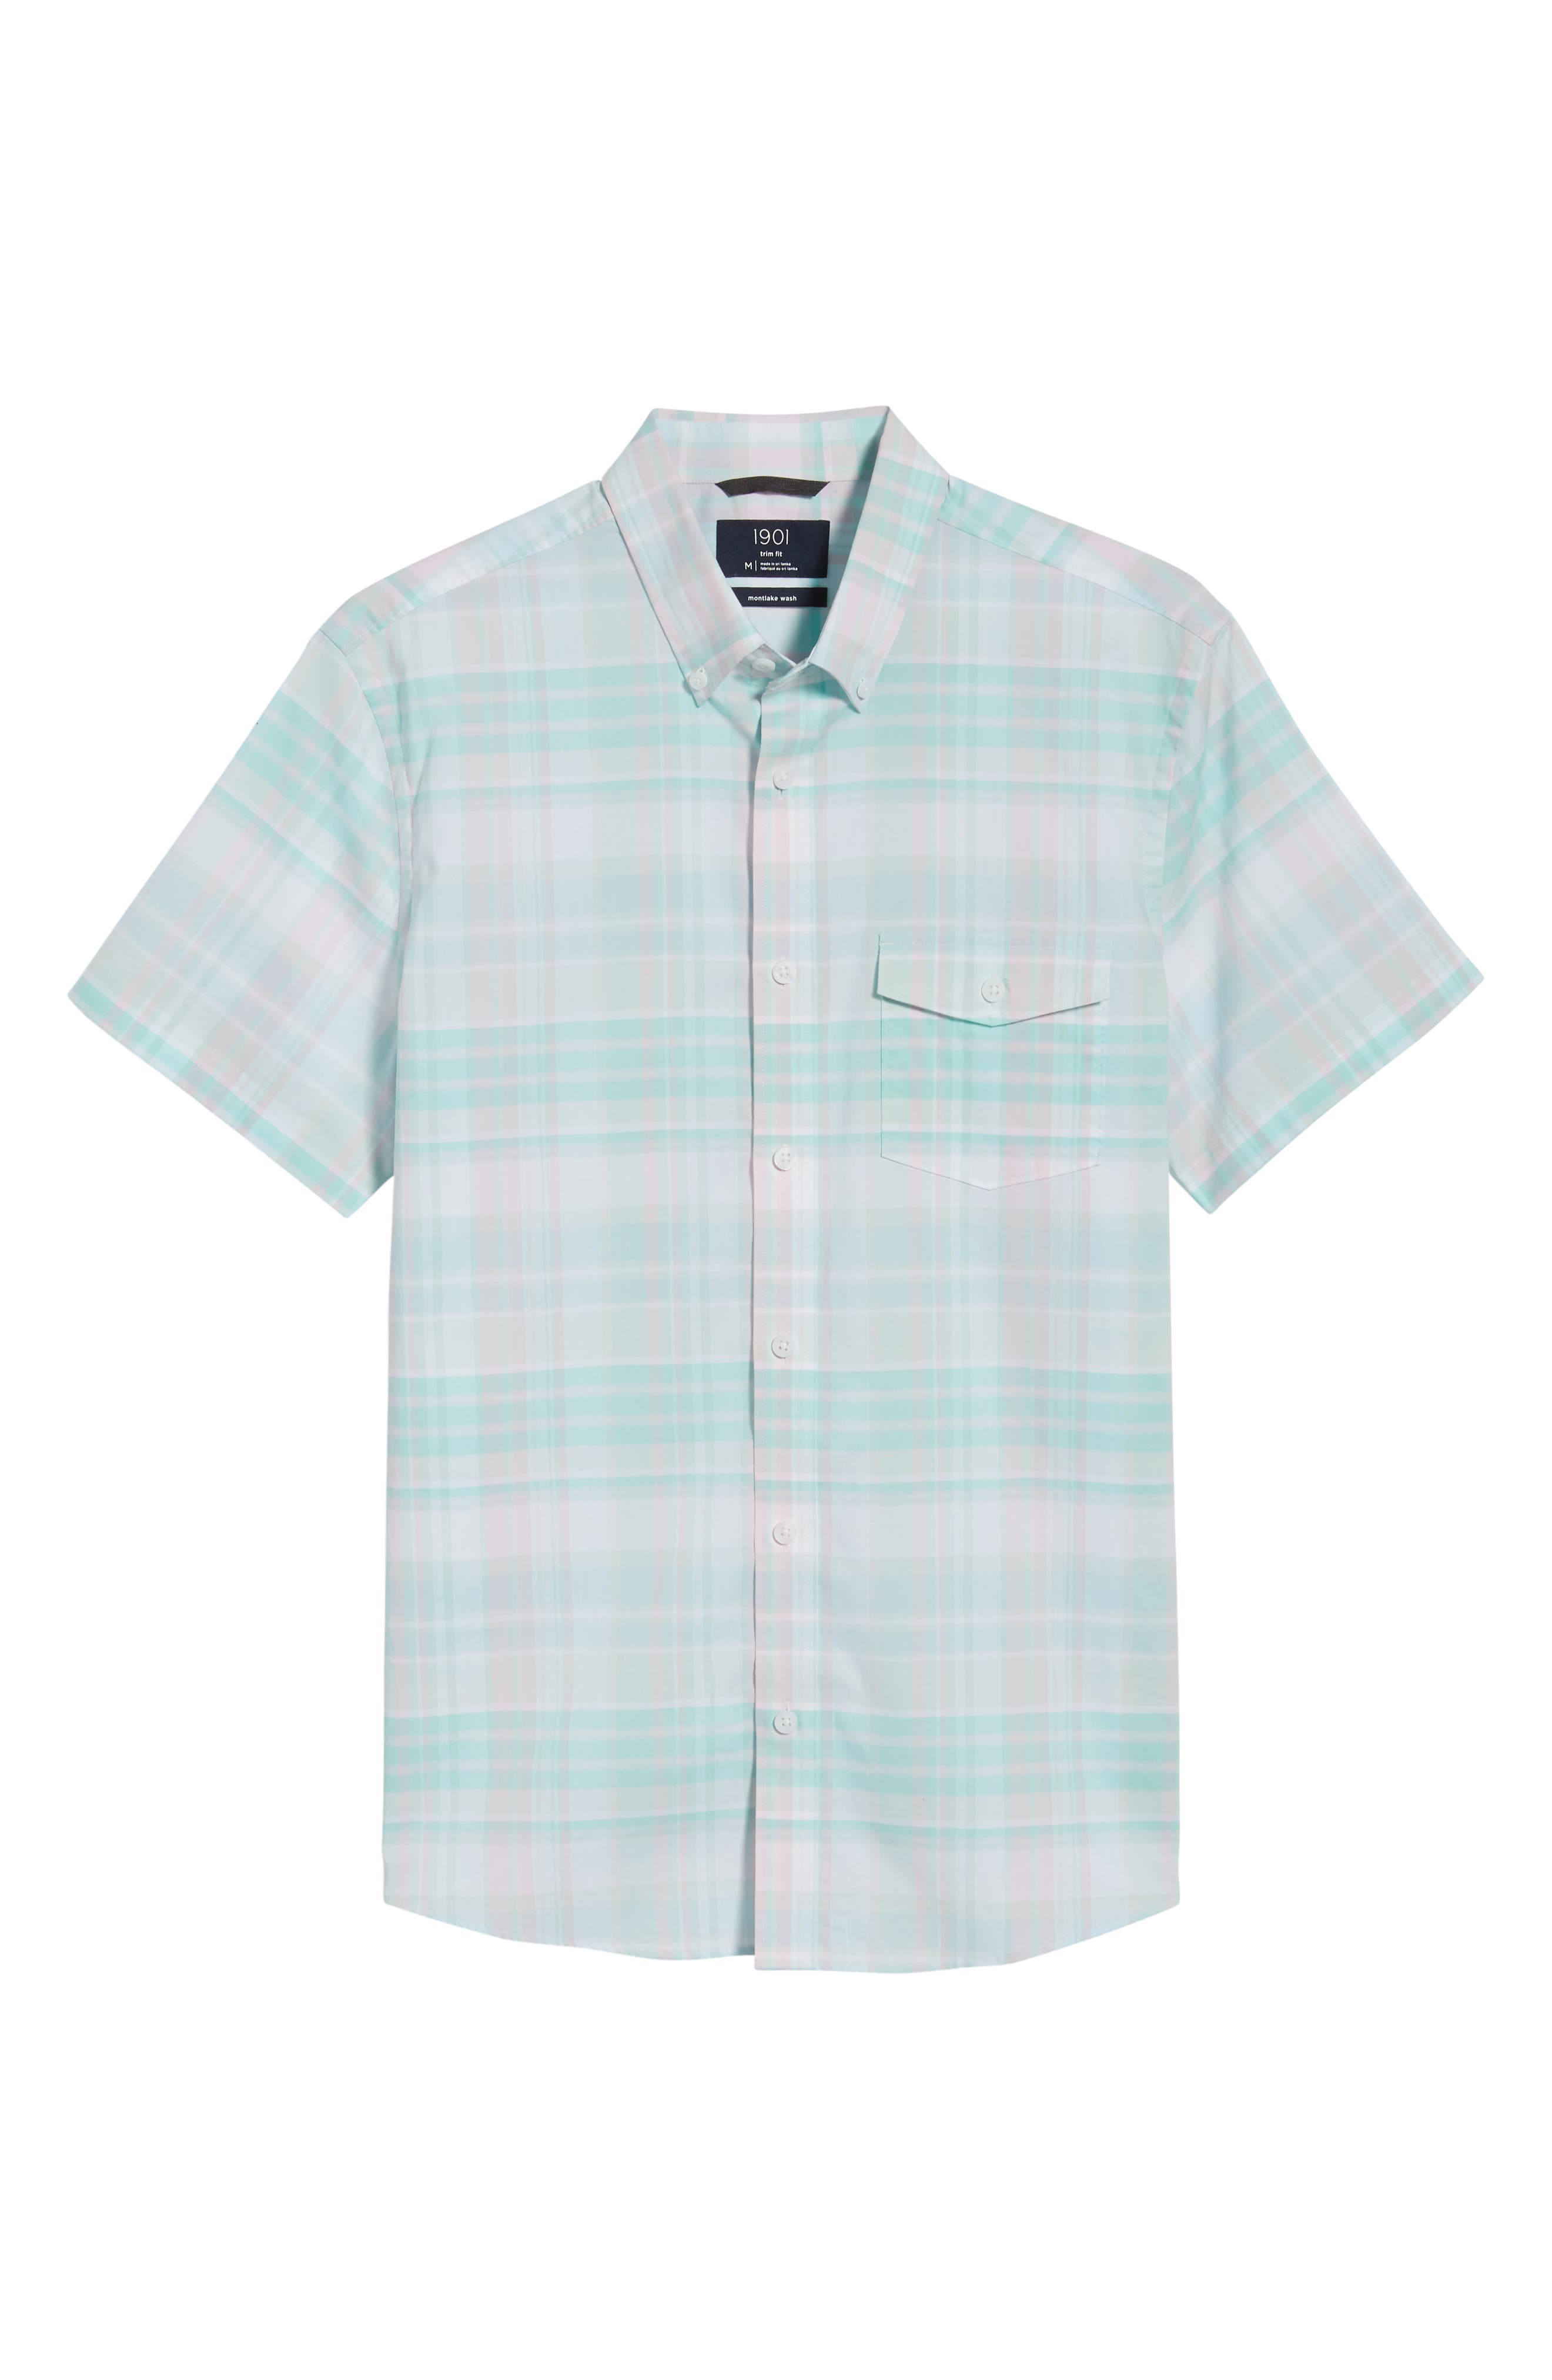 Trim Fit Plaid Short Sleeve Sport Shirt,                             Alternate thumbnail 6, color,                             Green Largo Pink Plaid